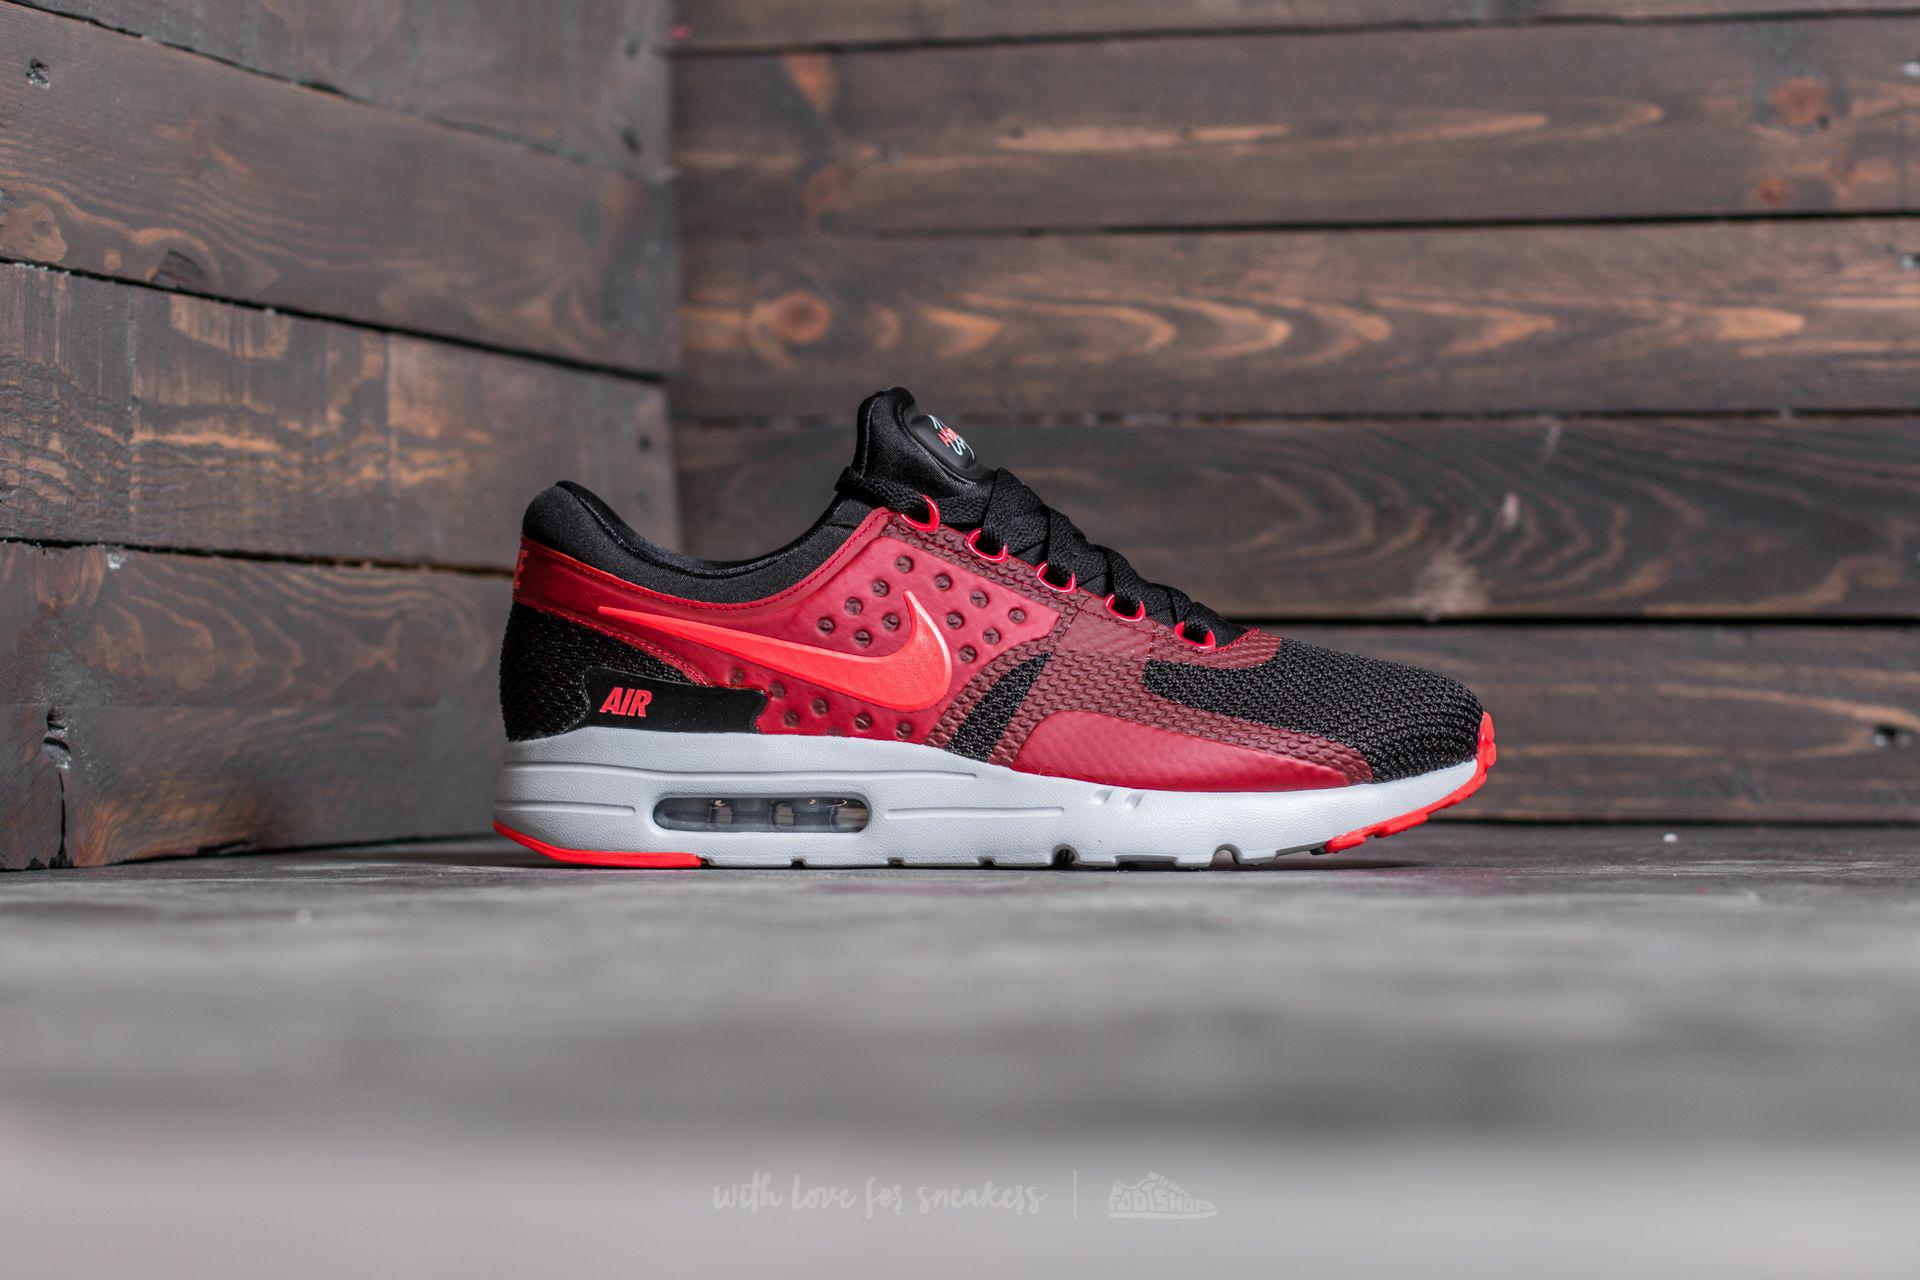 Lyst - Nike Air Max Zero Essential Black  Bright Crimson-gym Red for Men 759f723c6